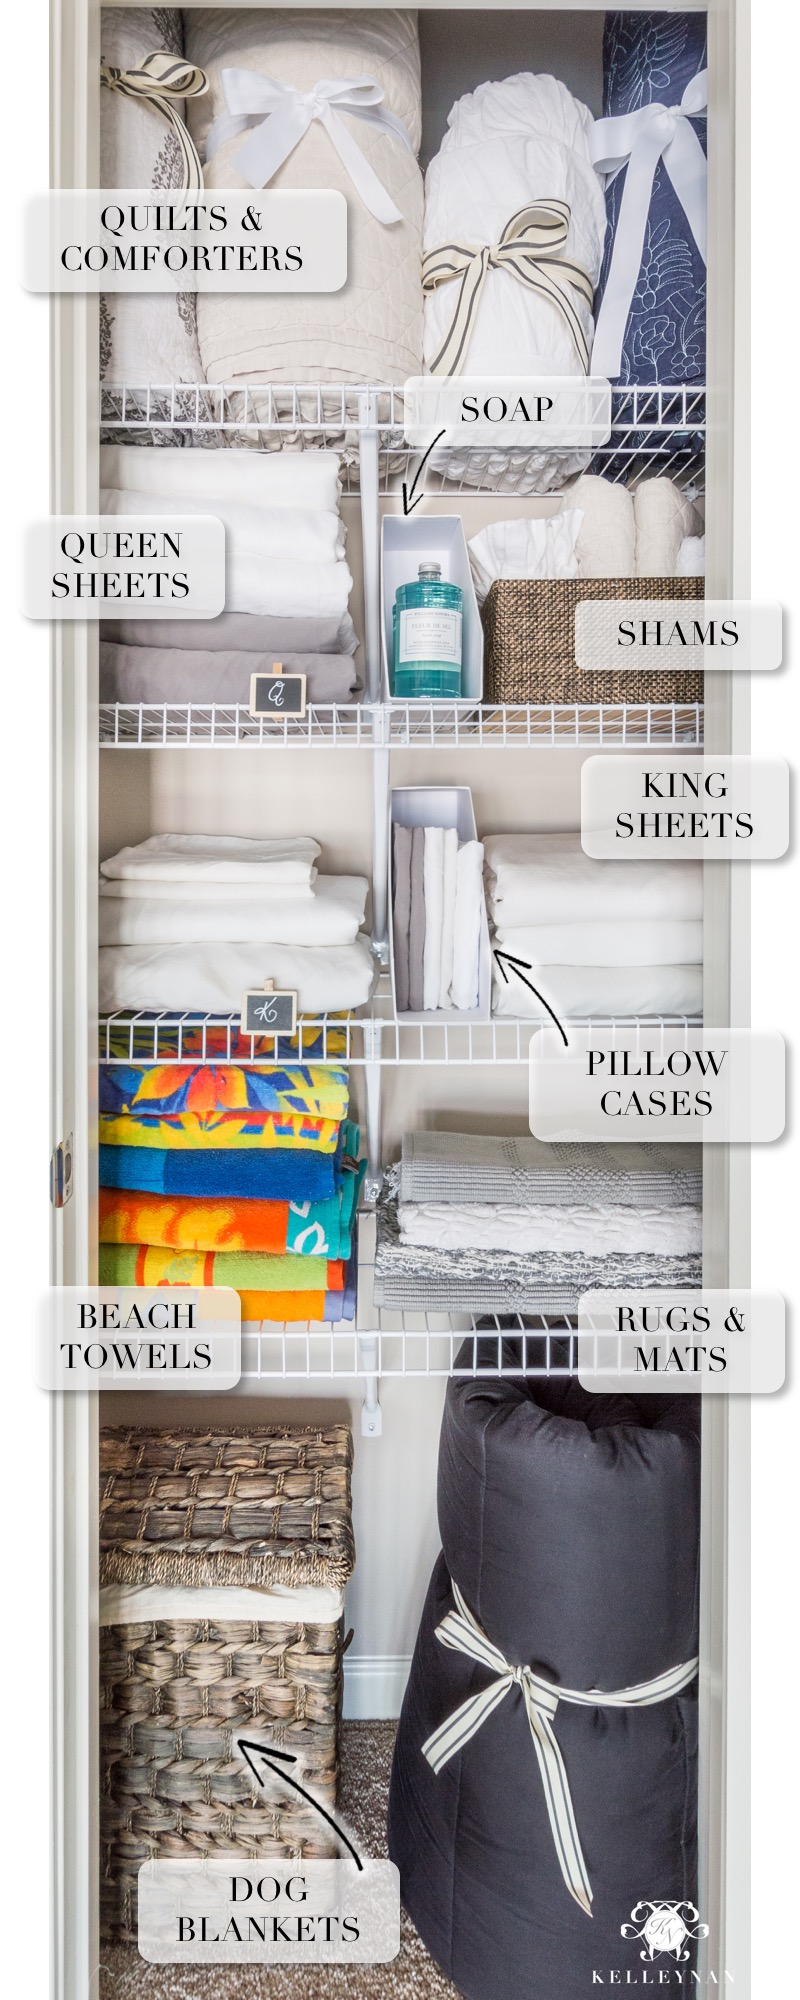 How to organize a small linen closet with spare bulky bedding, quilts, and sheets